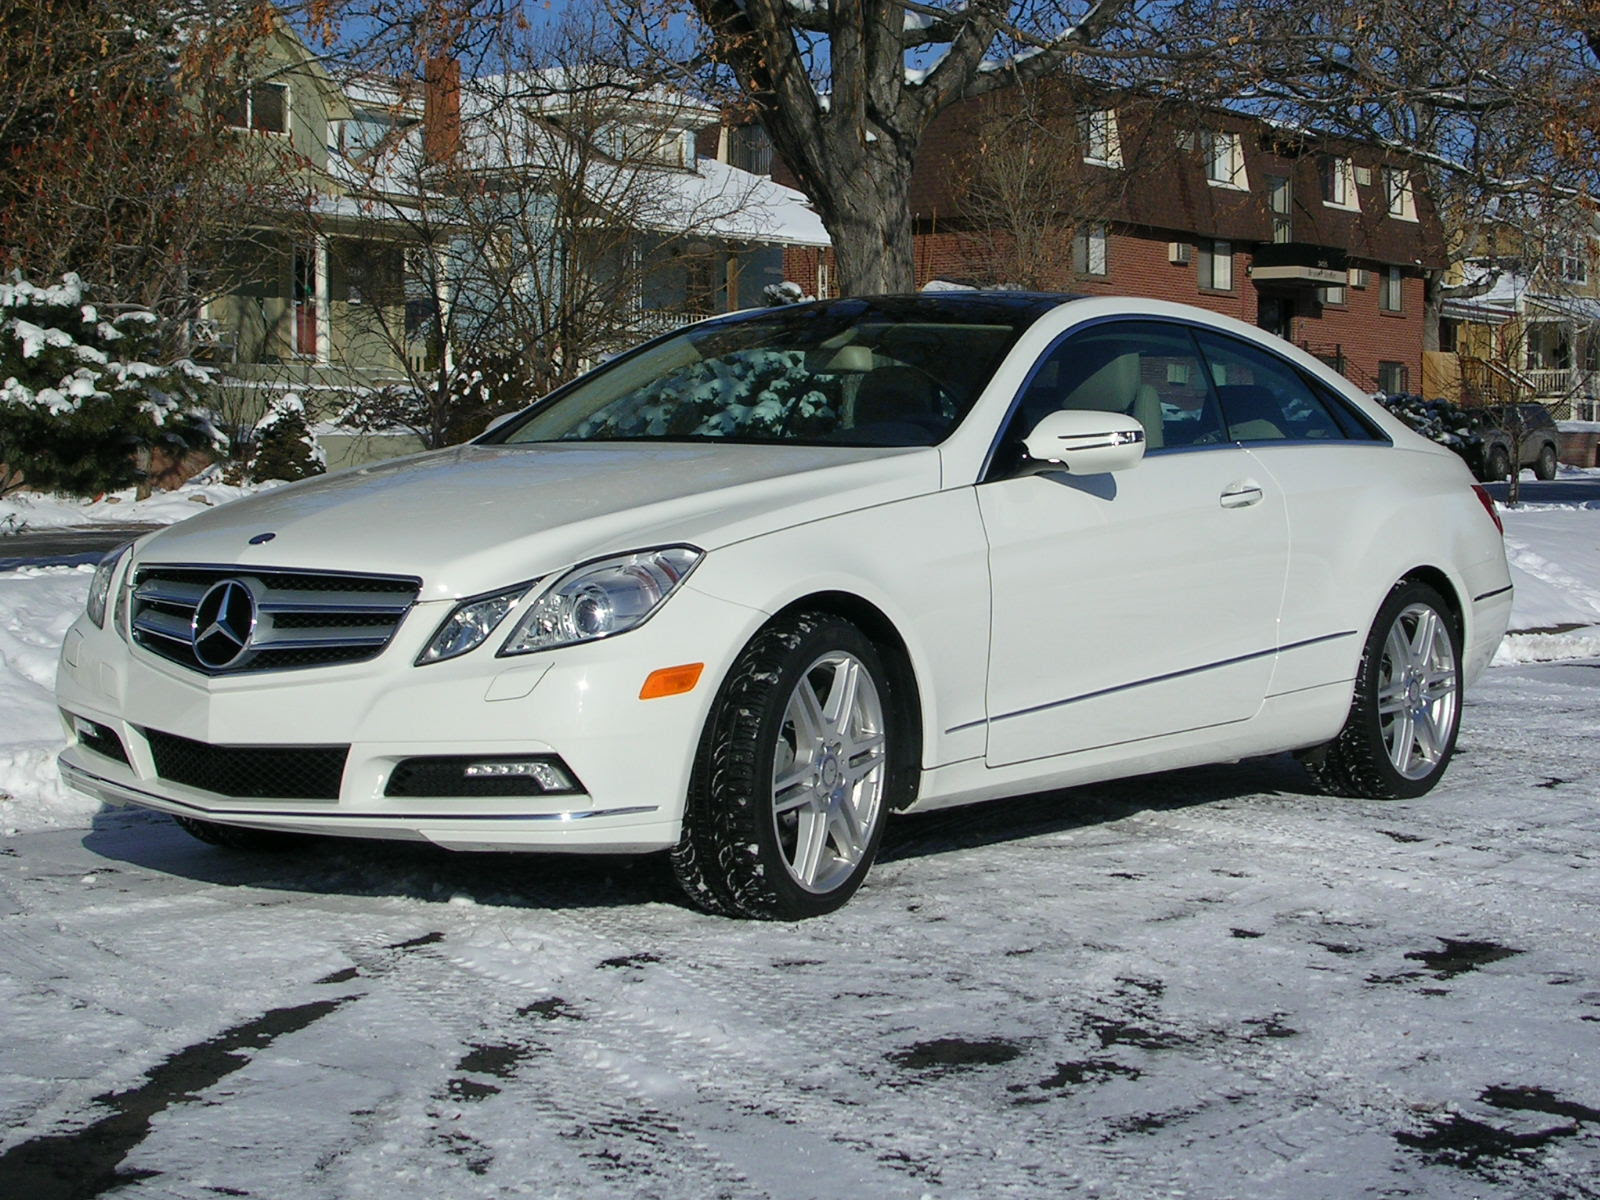 2010 mercedes-benz related images,start 100 - WeiLi ...